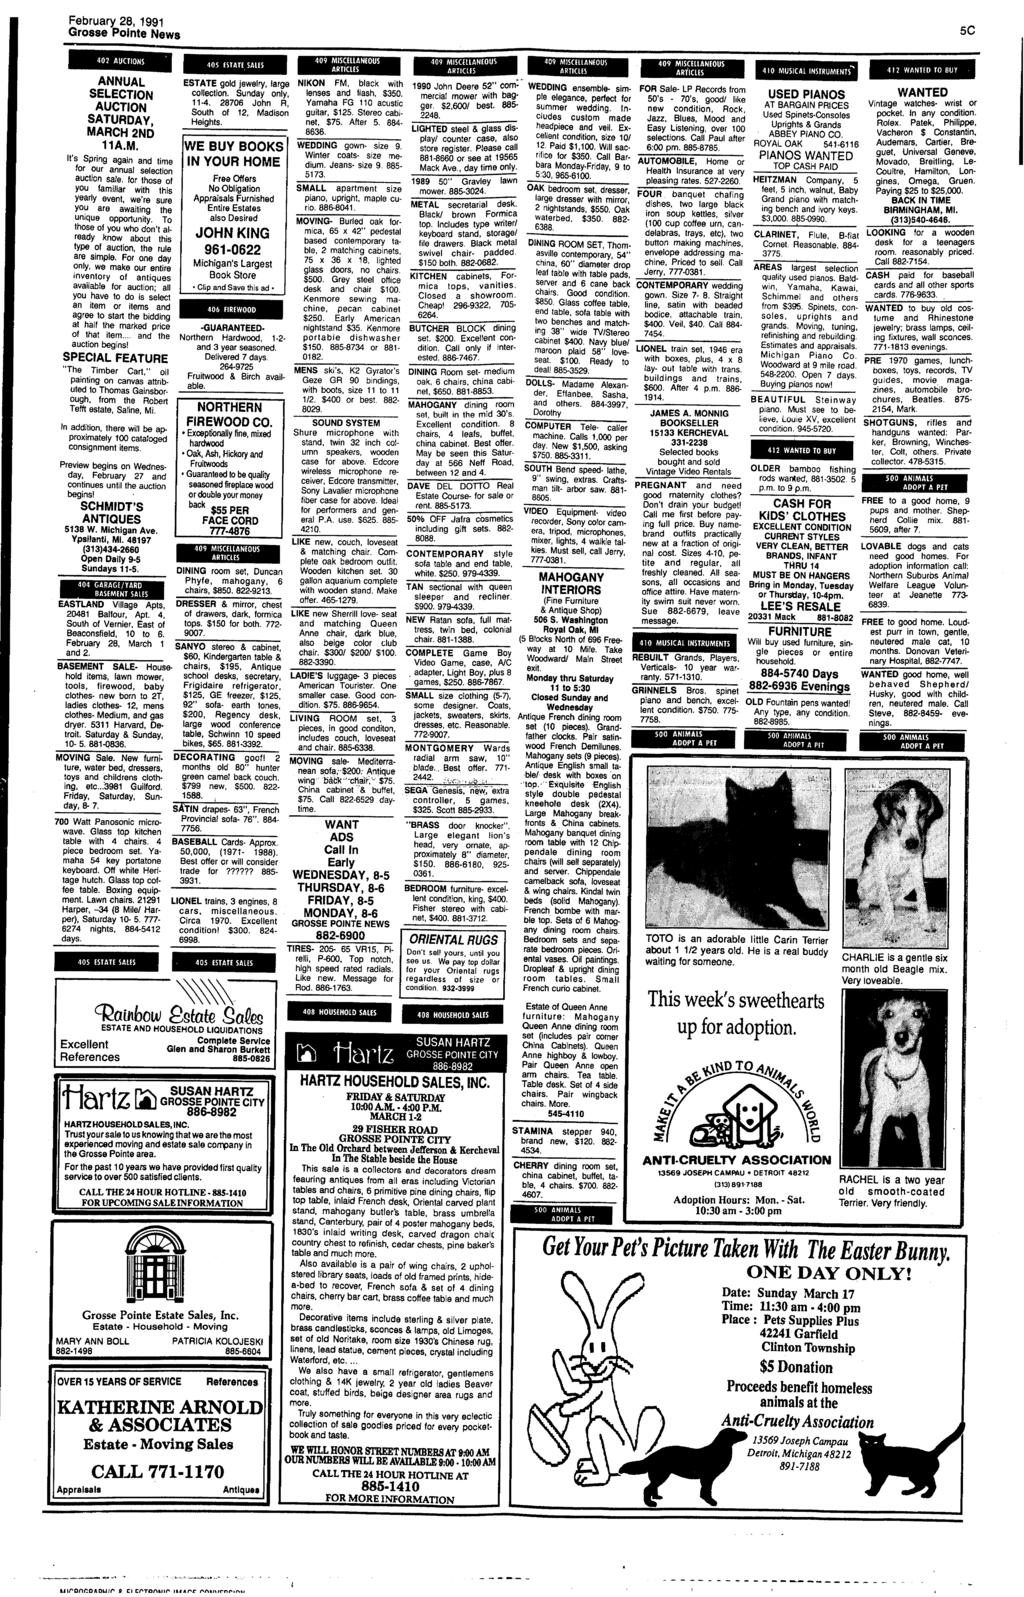 Pointers In Desert Stbrm Now Number More Than 50 A Community Animal Scarer Hobby Circuits And Projects Newspaper News Vol 52 No9 Ji Grosse Pointe Michigan Since Pdf